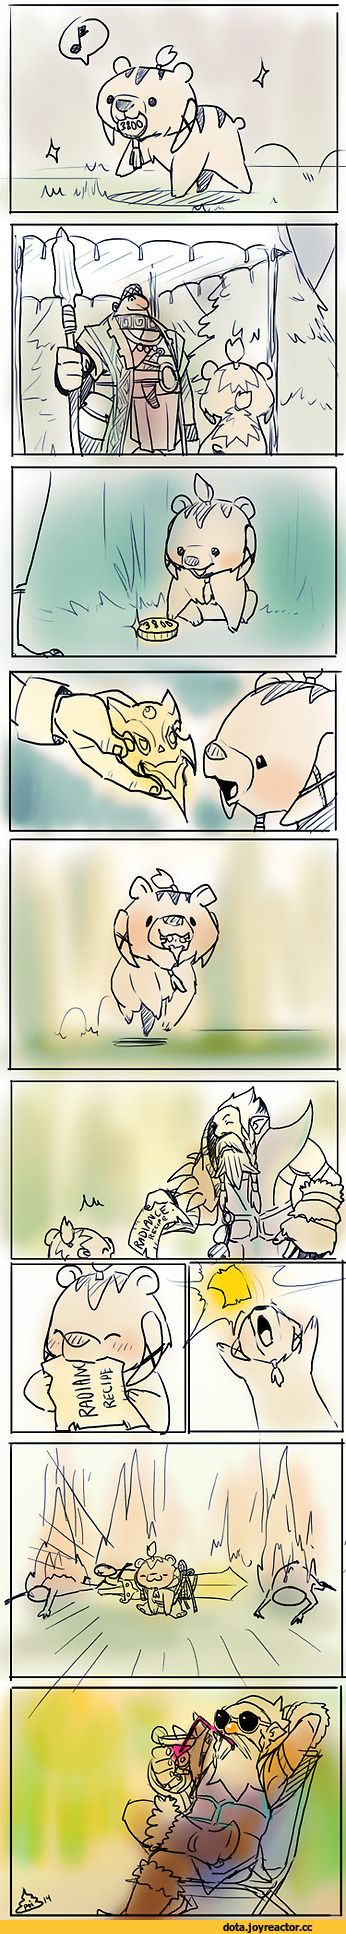 #Dota2 Sylla the Lone Druid,Dota,фэндомы,Dota Comics,песочница